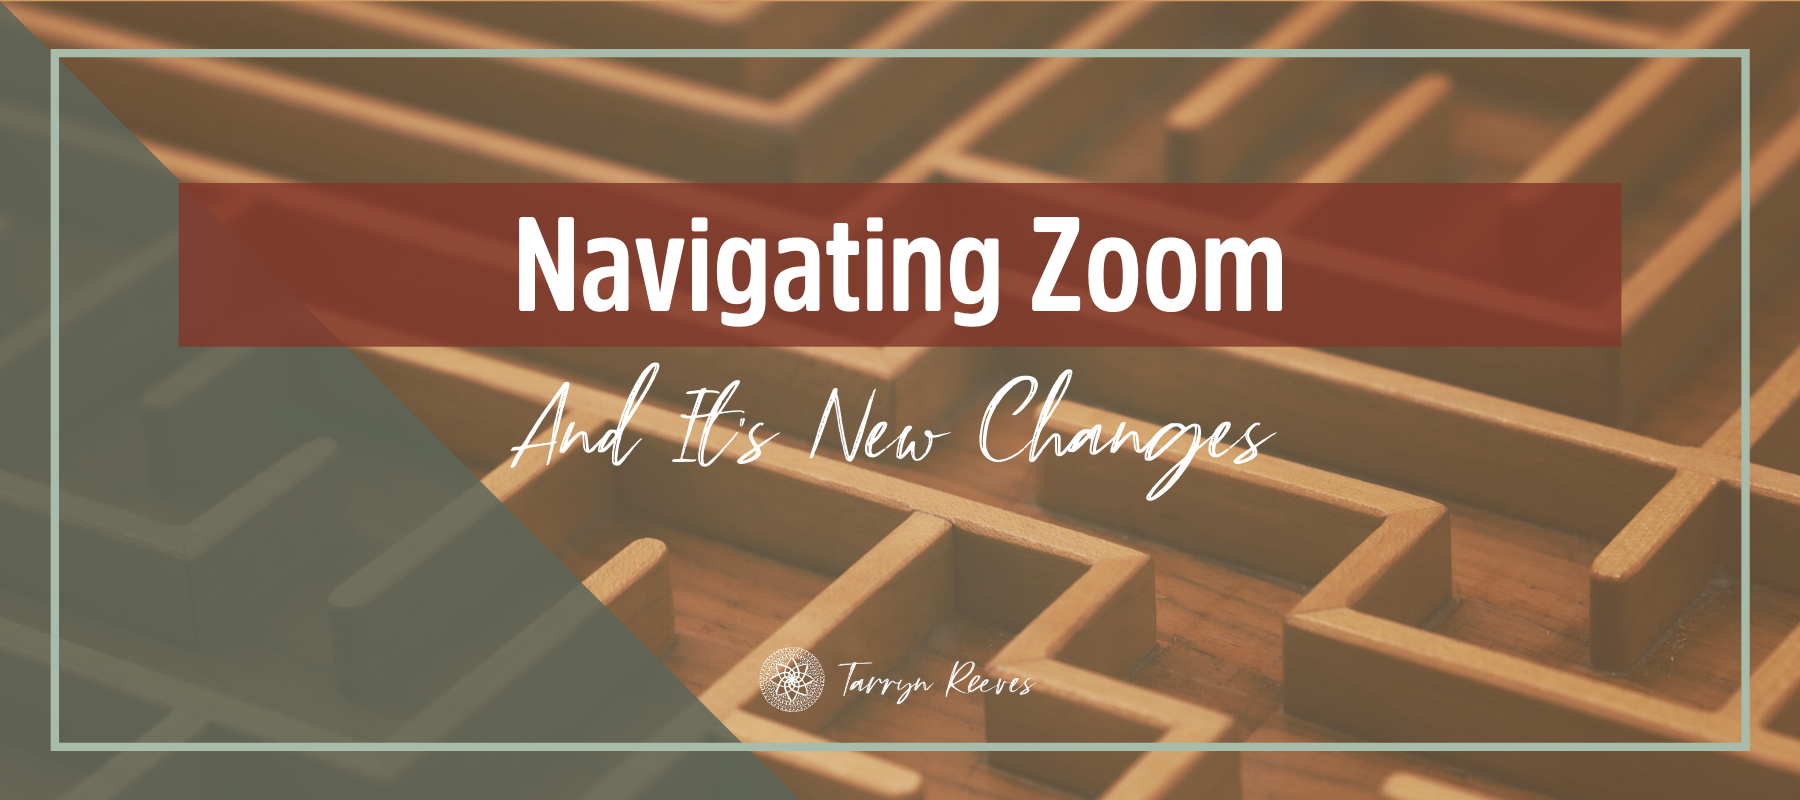 Navigating Zoom's New Changes